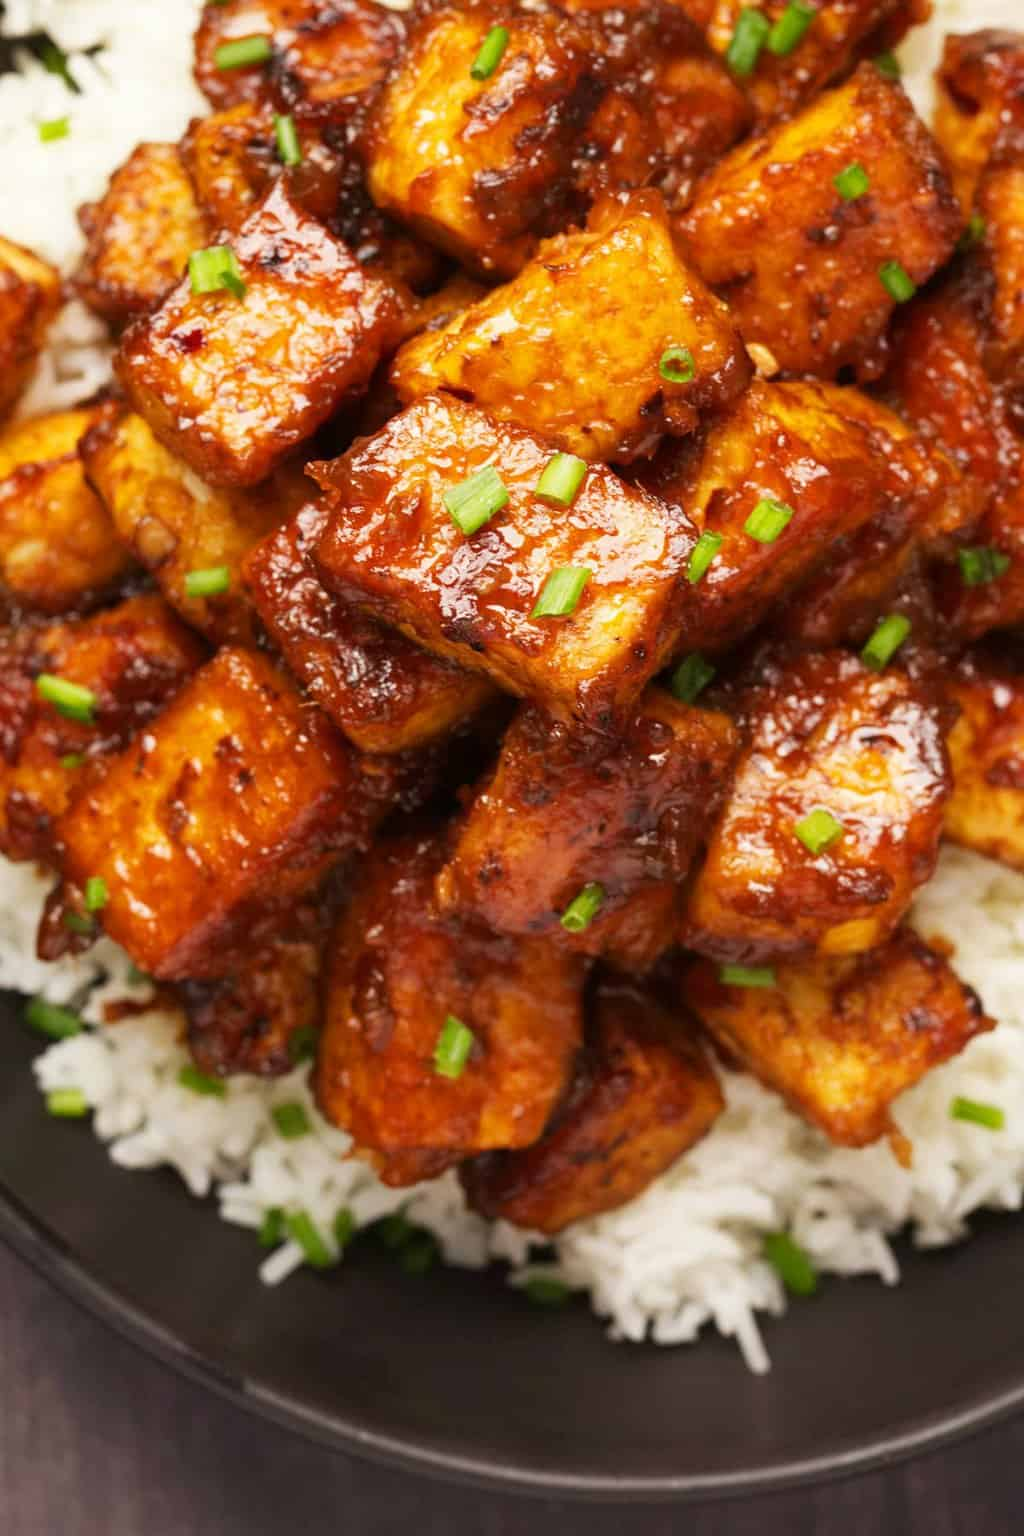 General Tso's tofu served with basmati rice and chopped chives.